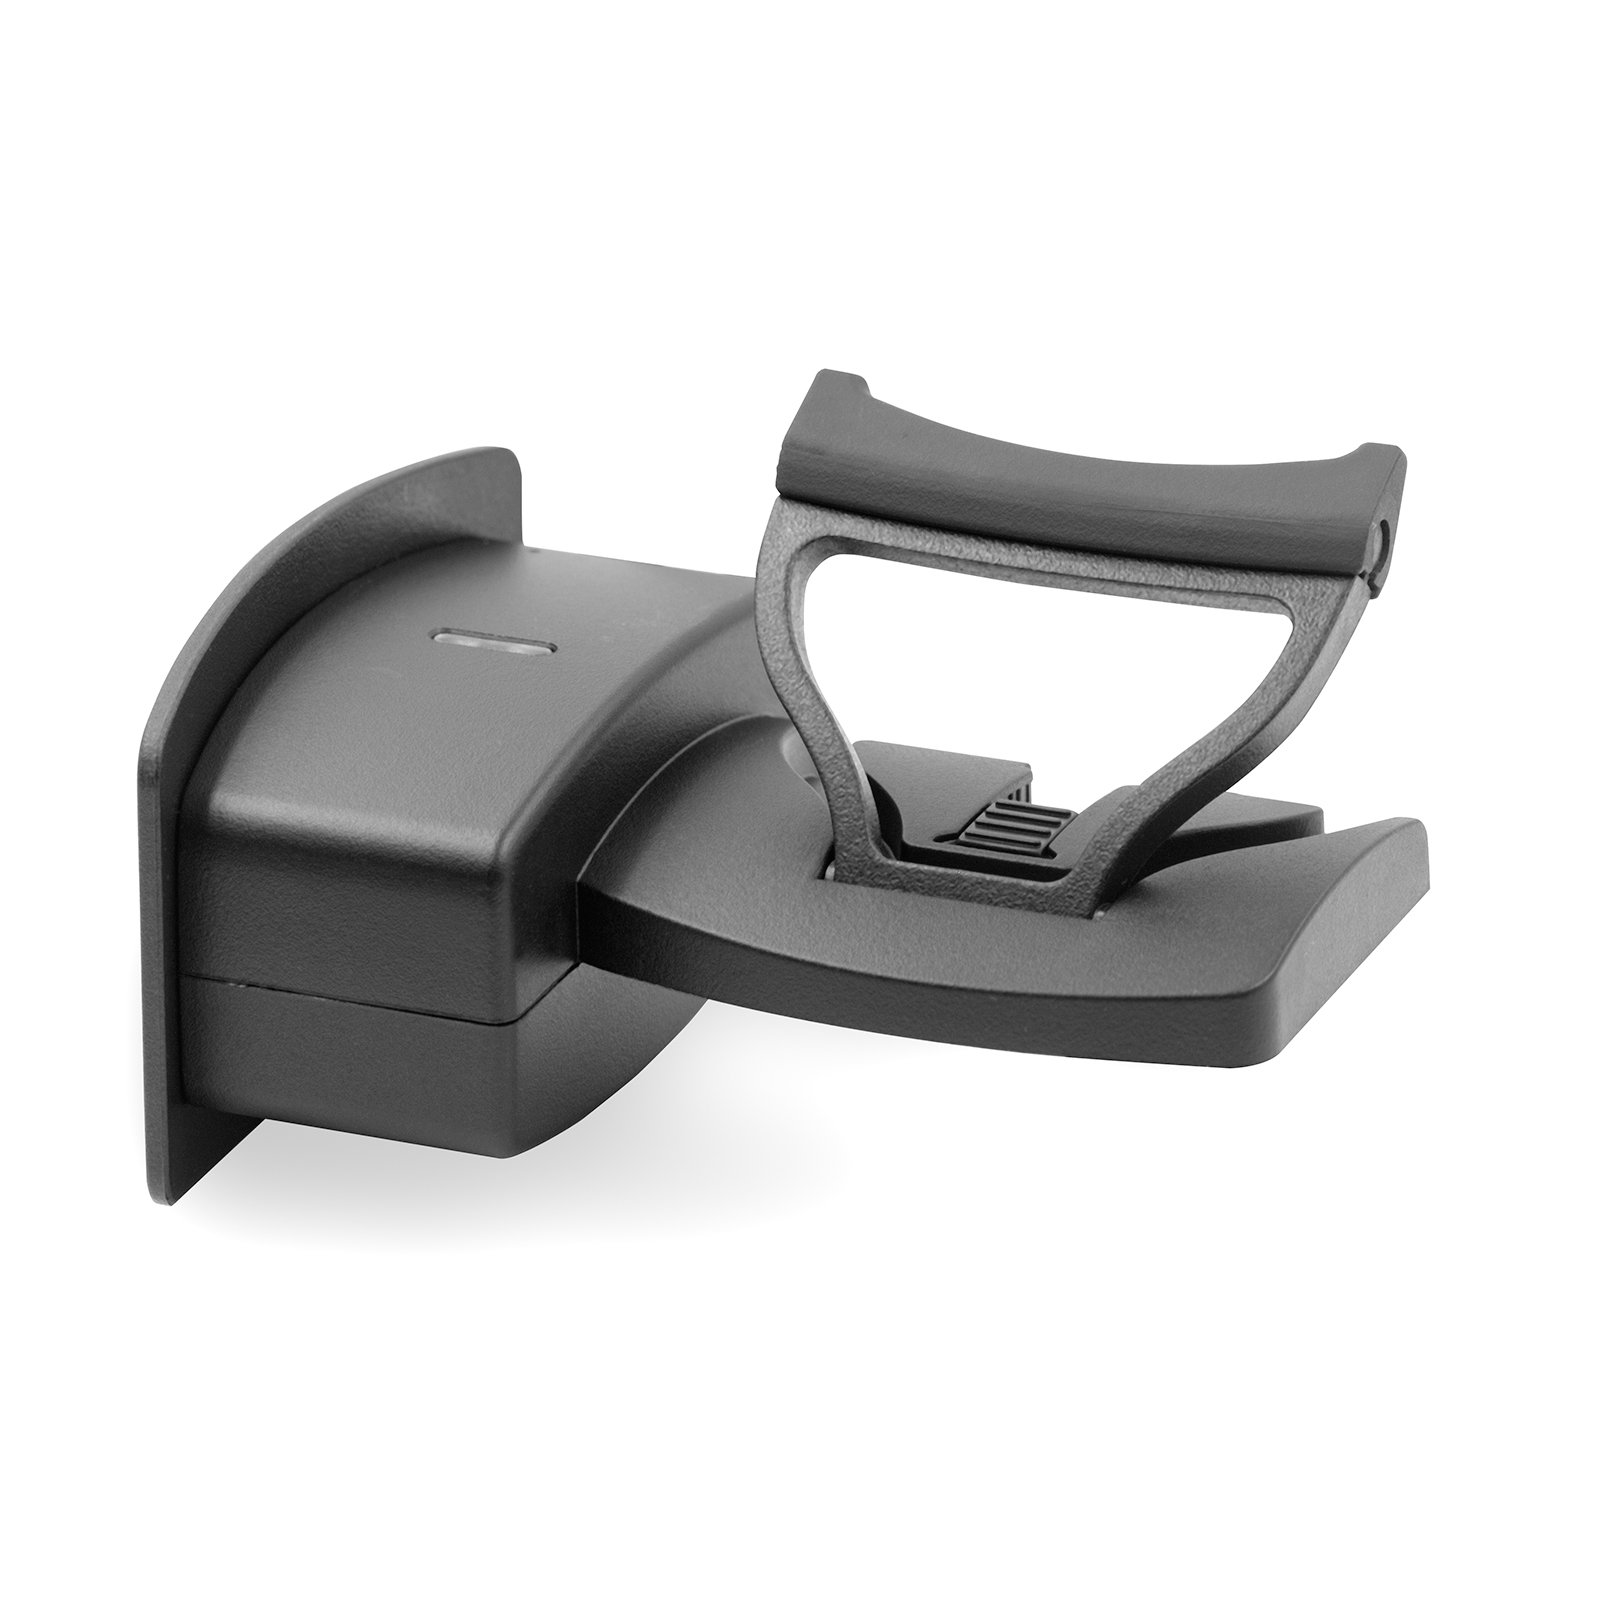 Handset Lifter for Leitner Wireless Headsets. Works with Leitner LH270, LH275, and LH280 by Leitner